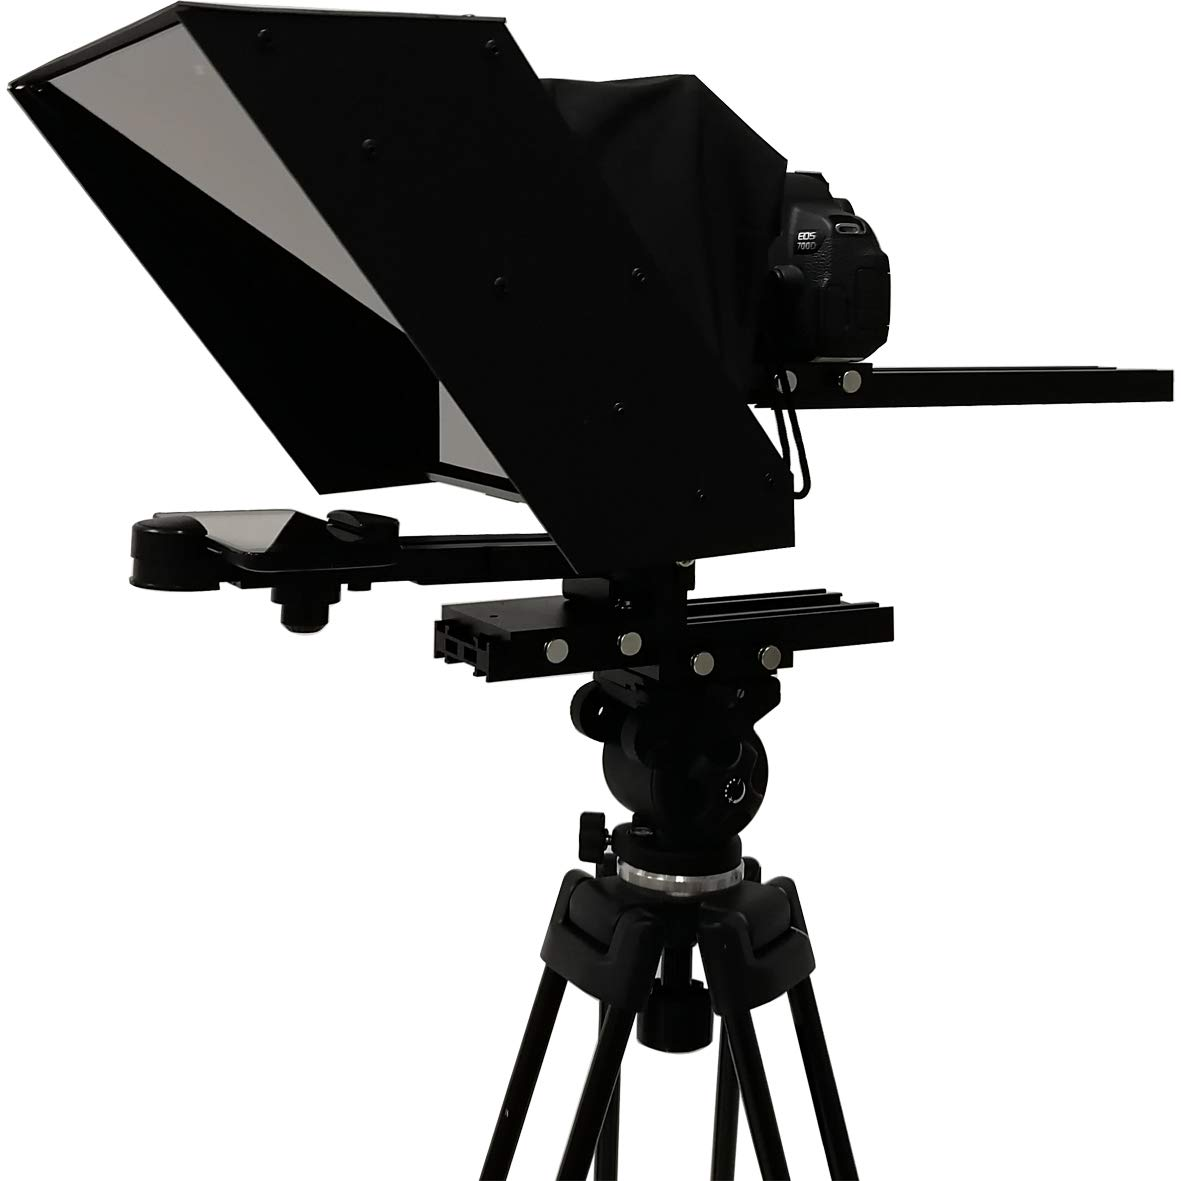 Portable teleprompter ipad & Phone by Doscien